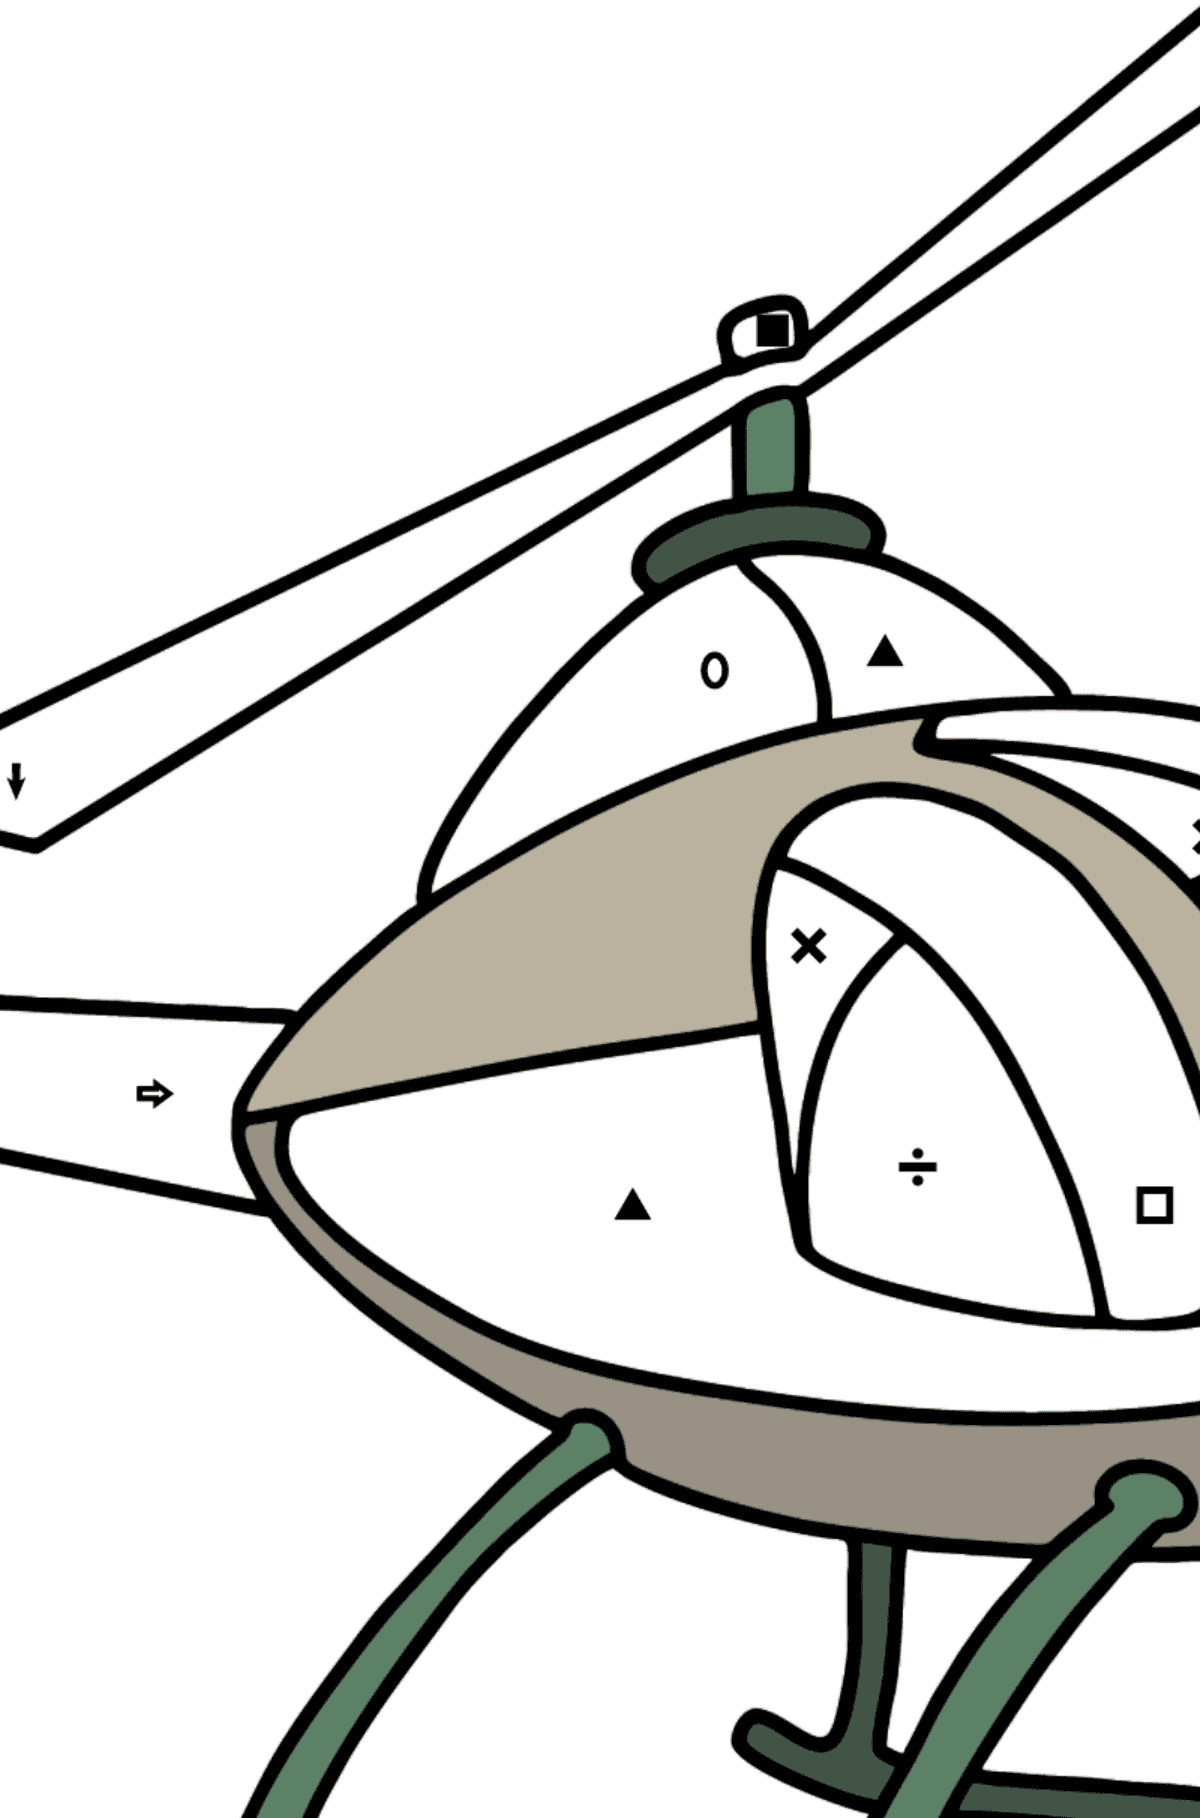 Helicopter coloring page for kids - Coloring by Symbols and Geometric Shapes for Kids